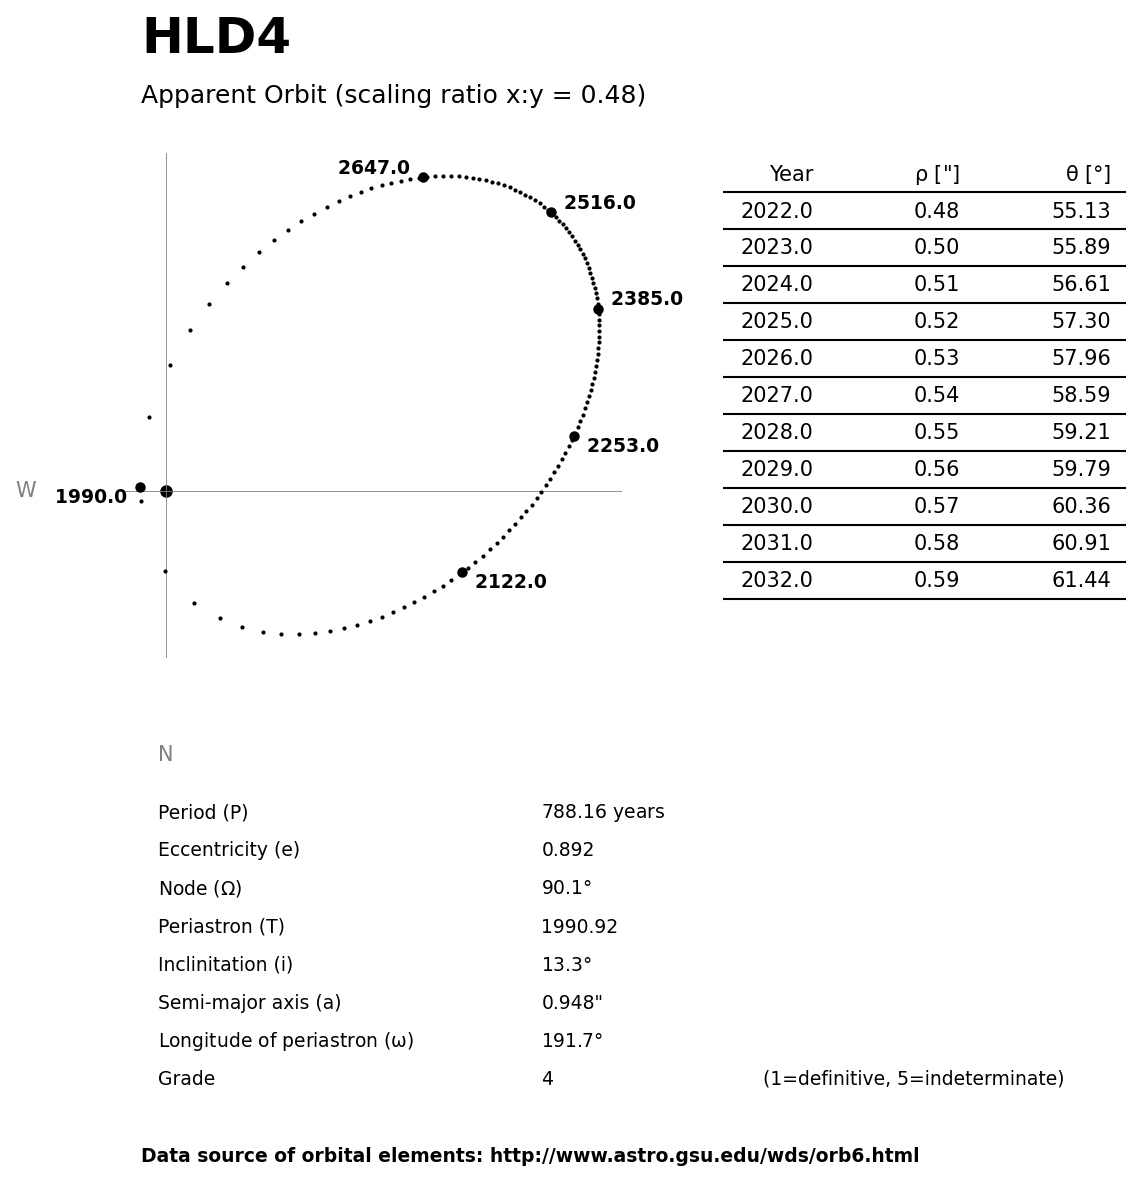 ../images/binary-star-orbits/HLD4-orbit.jpg